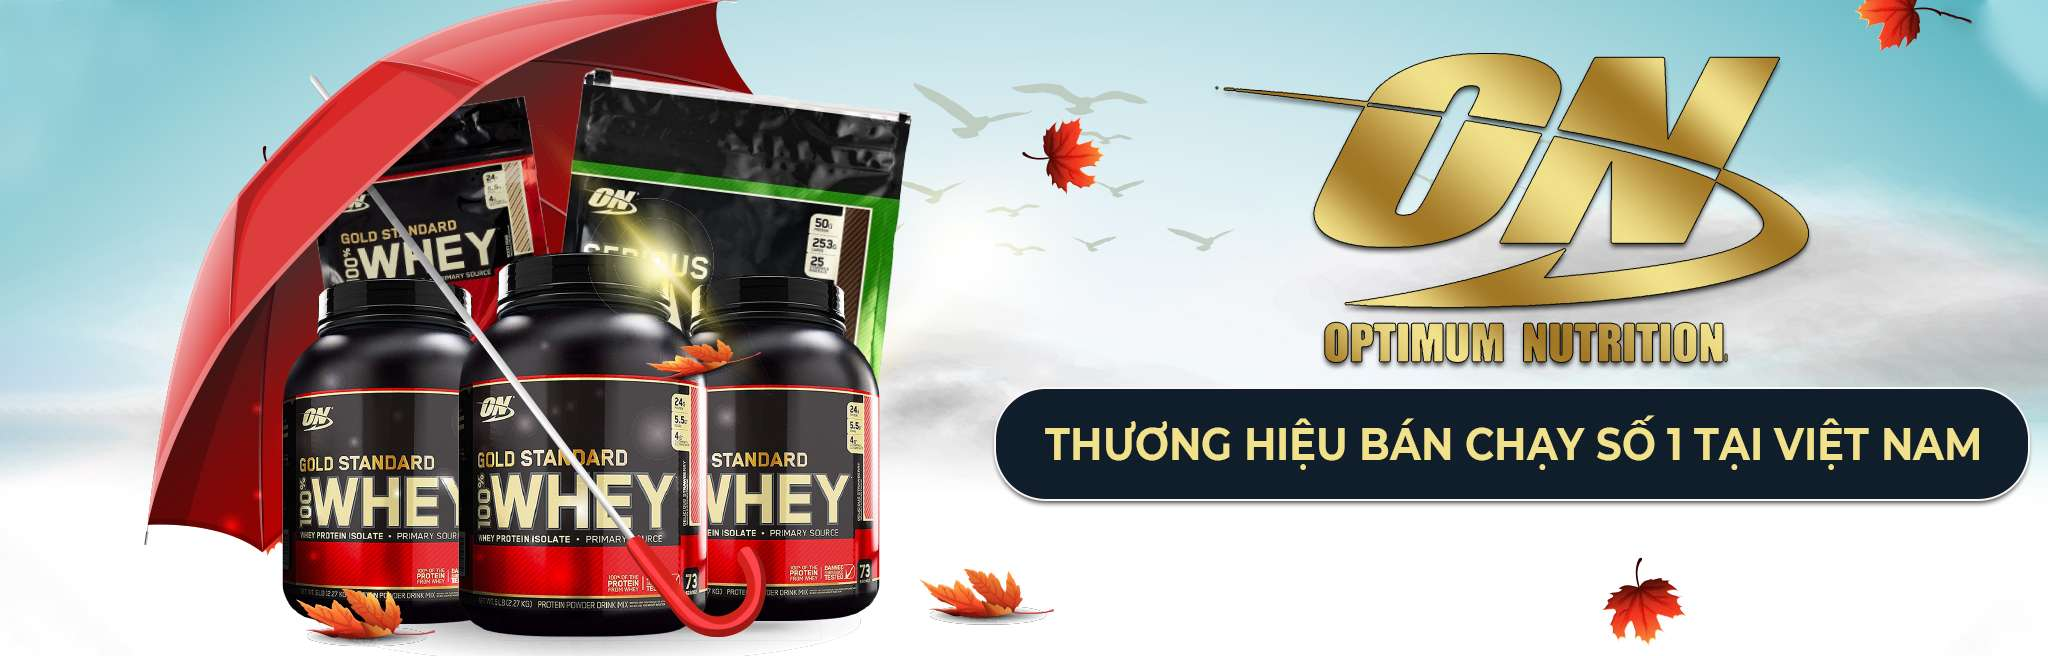 on optimum nutrition thuong hieu ban chay hang dau viet nam